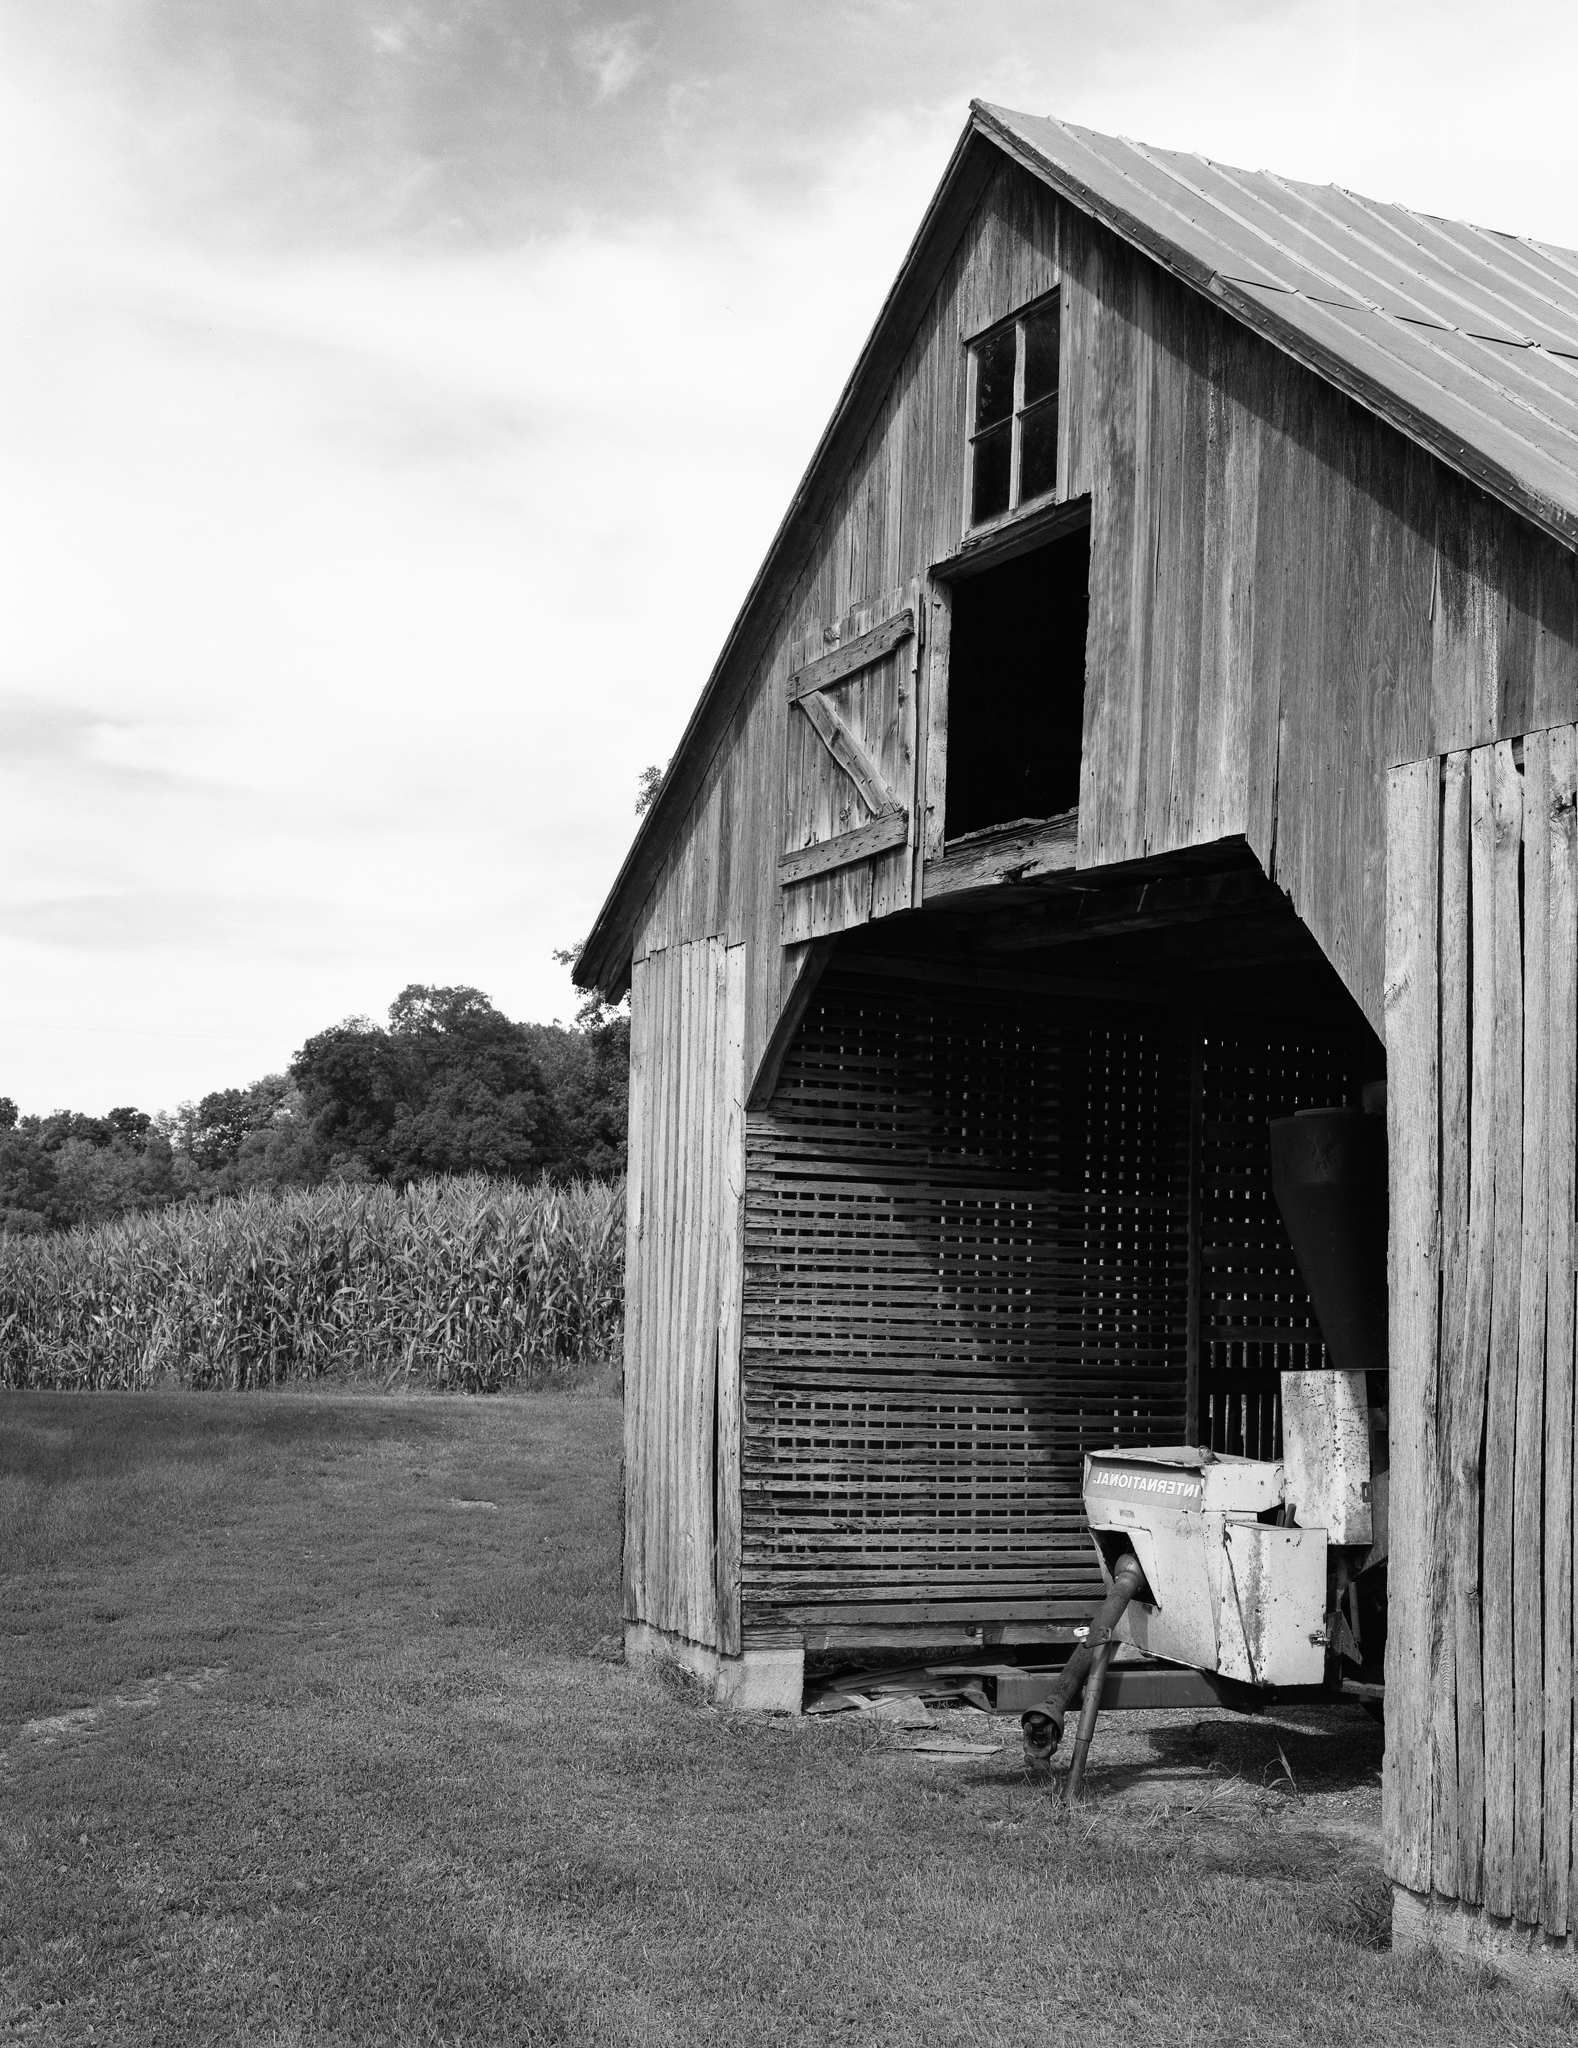 4x5_for_365_project_0277_Oley_corn_crib_barn.png